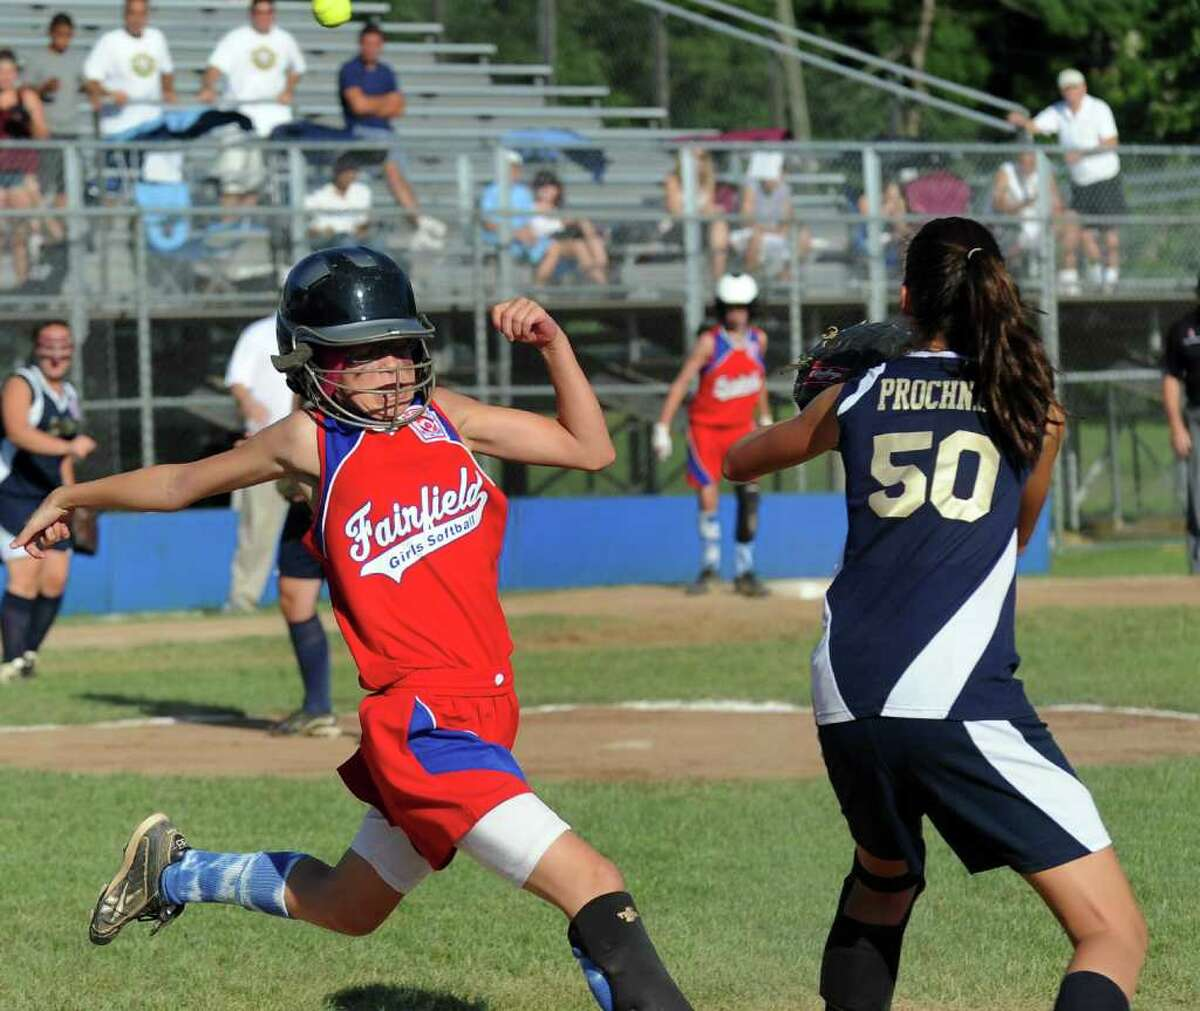 Fairfield's Mary Rose Finnegan beats the ball to first as New York's #50 Deana Prochnau waits, during Little League Softball Eastern Regional Championship game action in Bristol, Conn. on July 30, 2011. New York beat Fairfield 9-5.